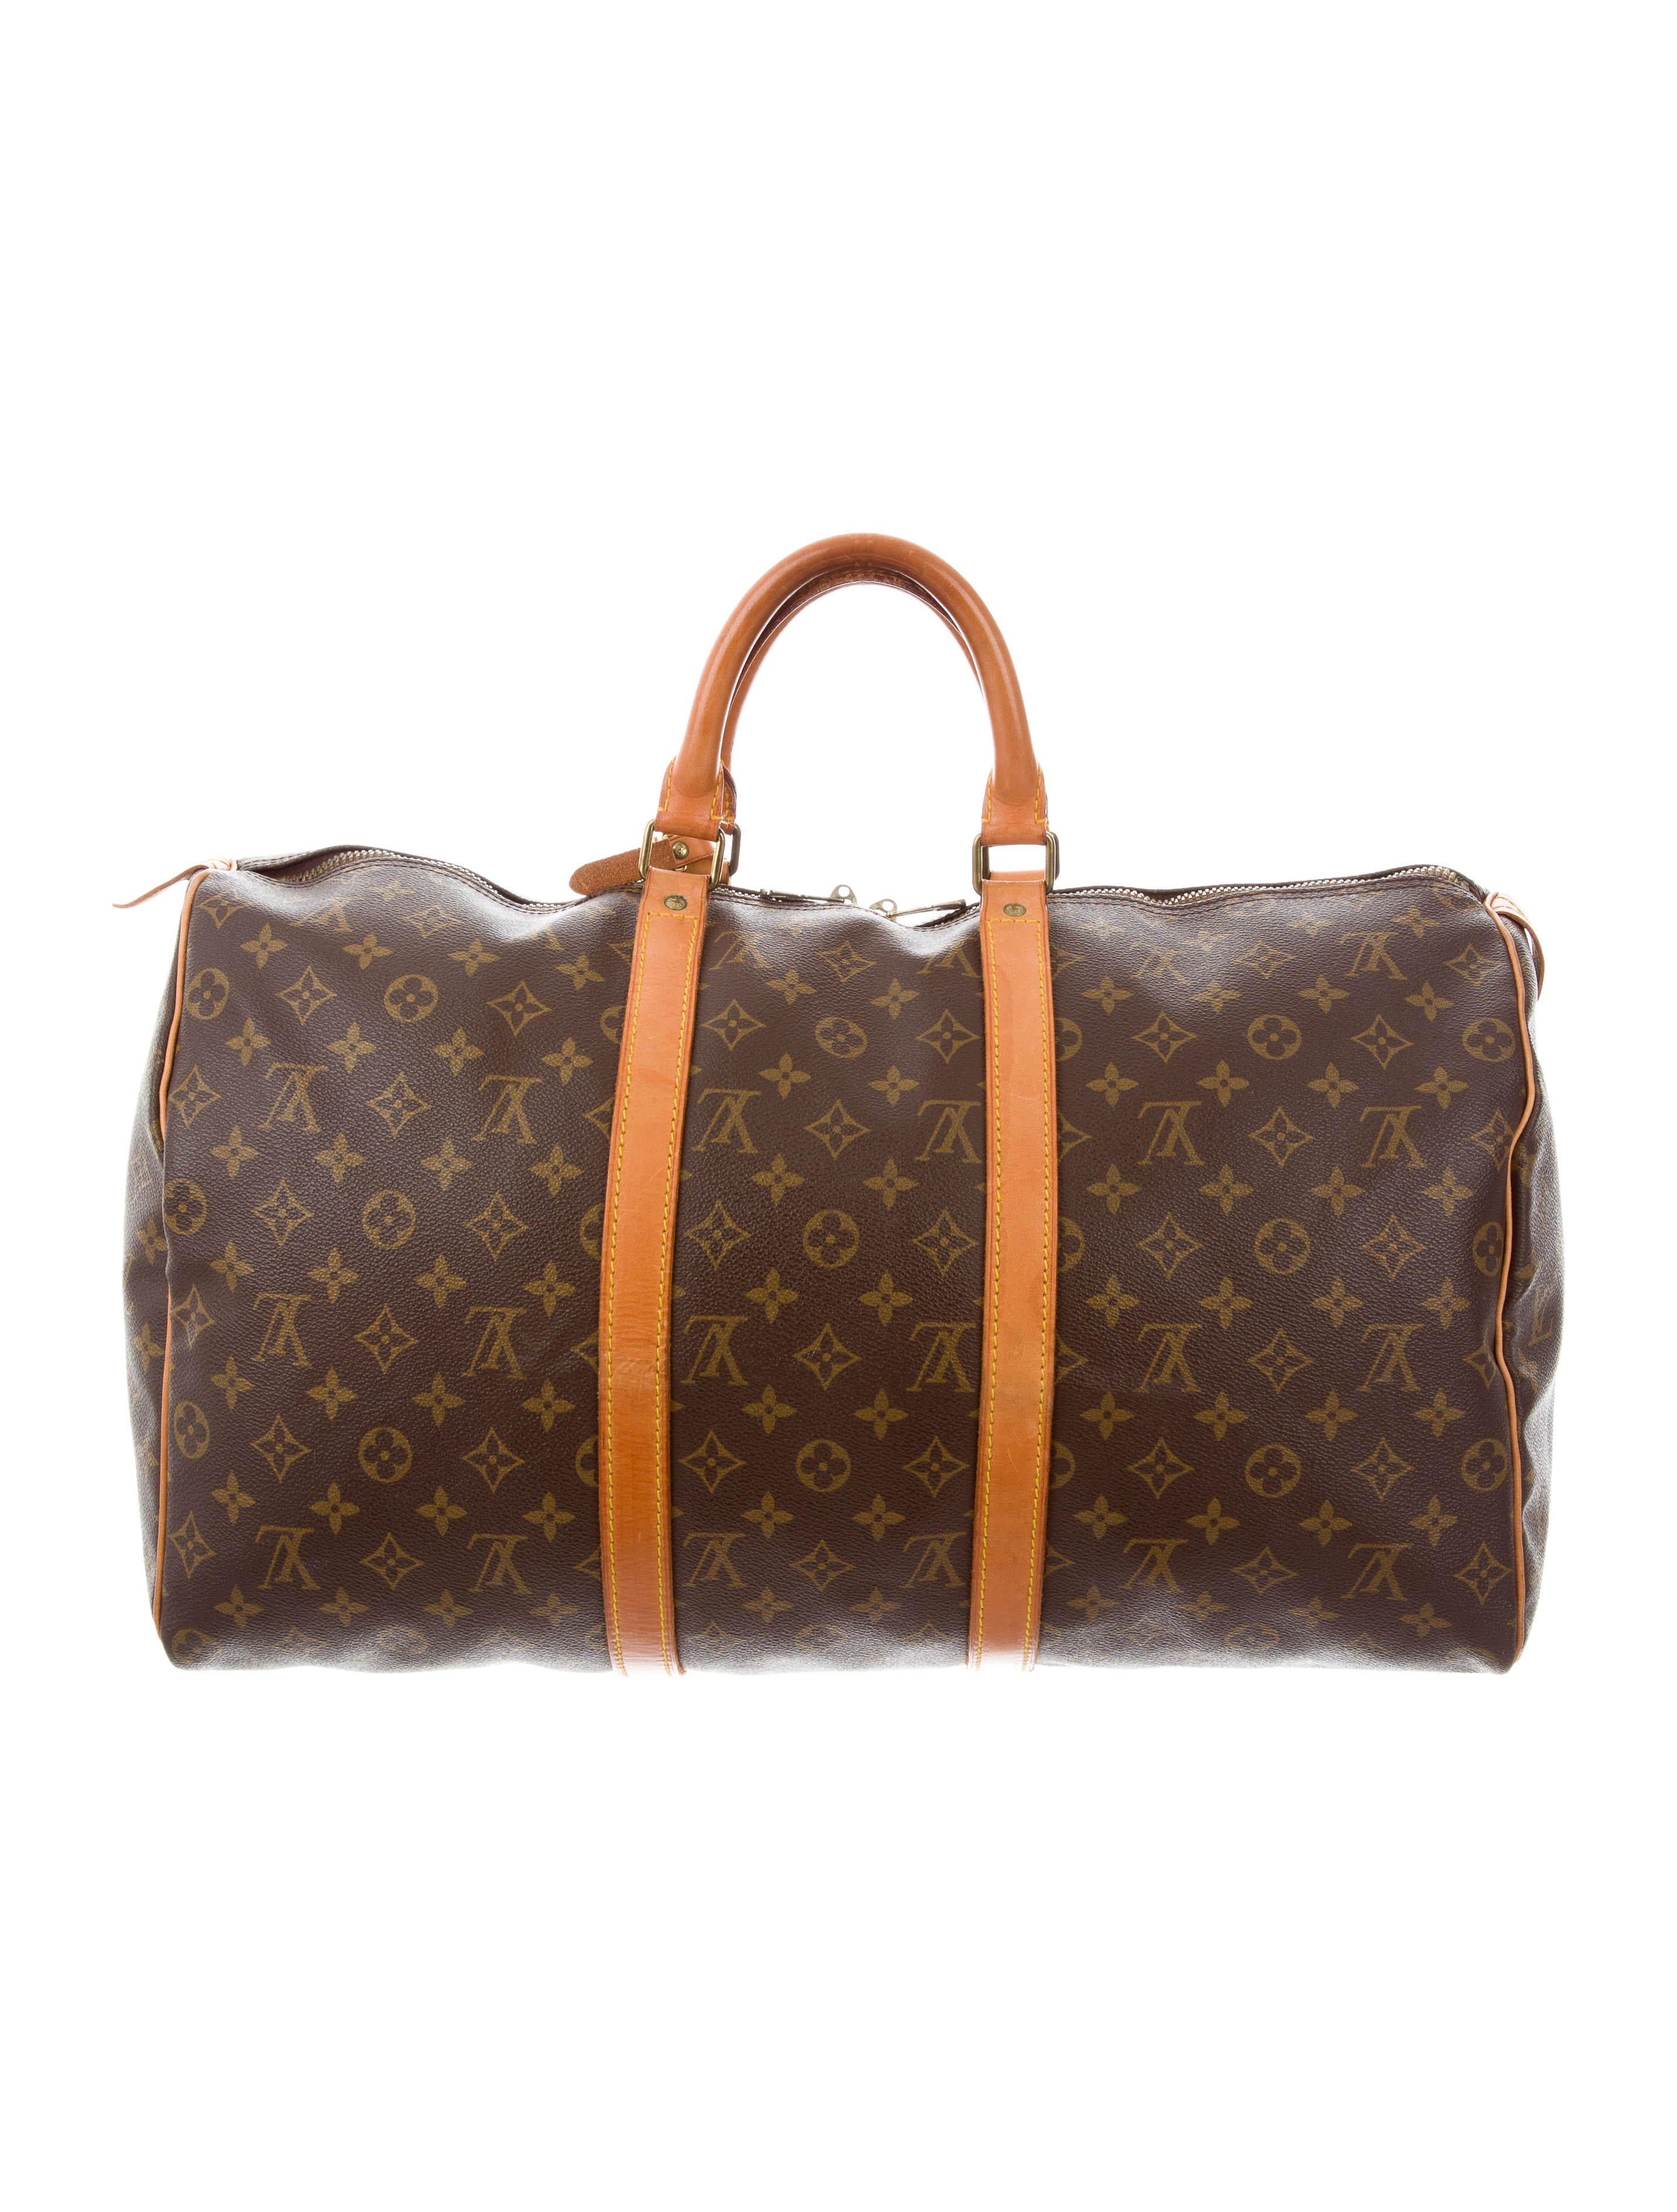 louis vuitton monogram keepall 50 handbags lou122766 the realreal. Black Bedroom Furniture Sets. Home Design Ideas